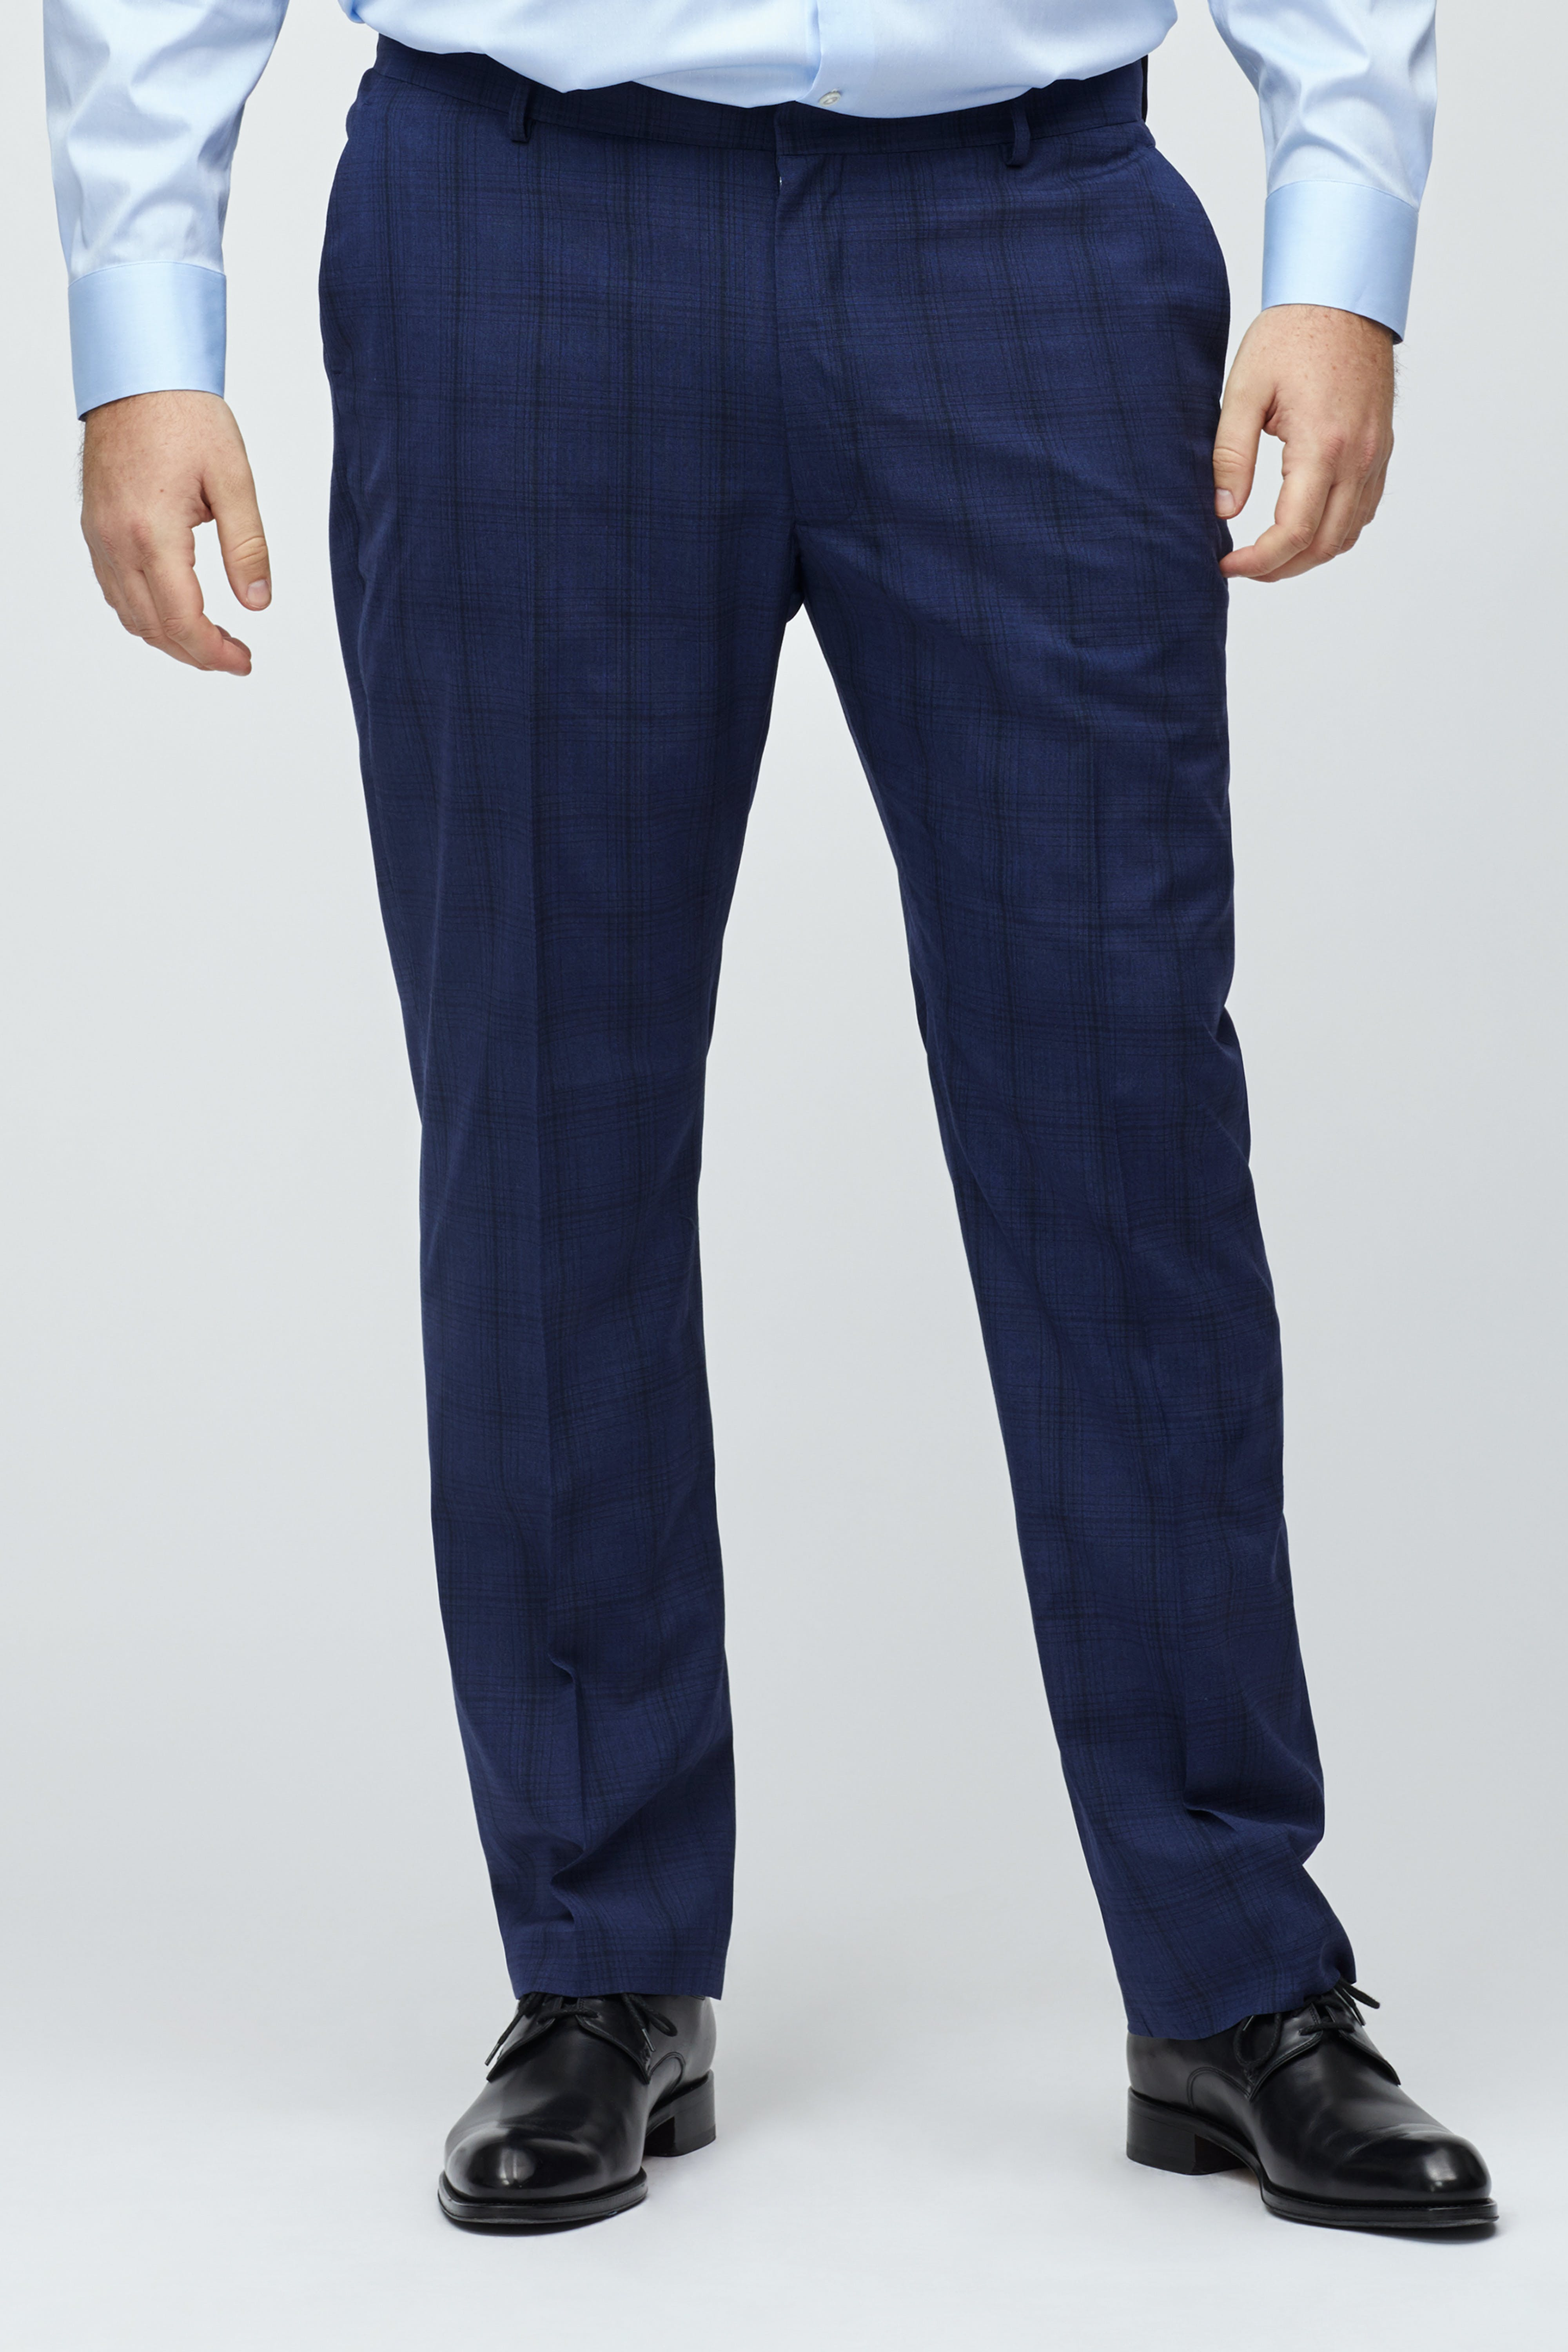 Italian Stretch Wool Dress Pants Extended Sizes